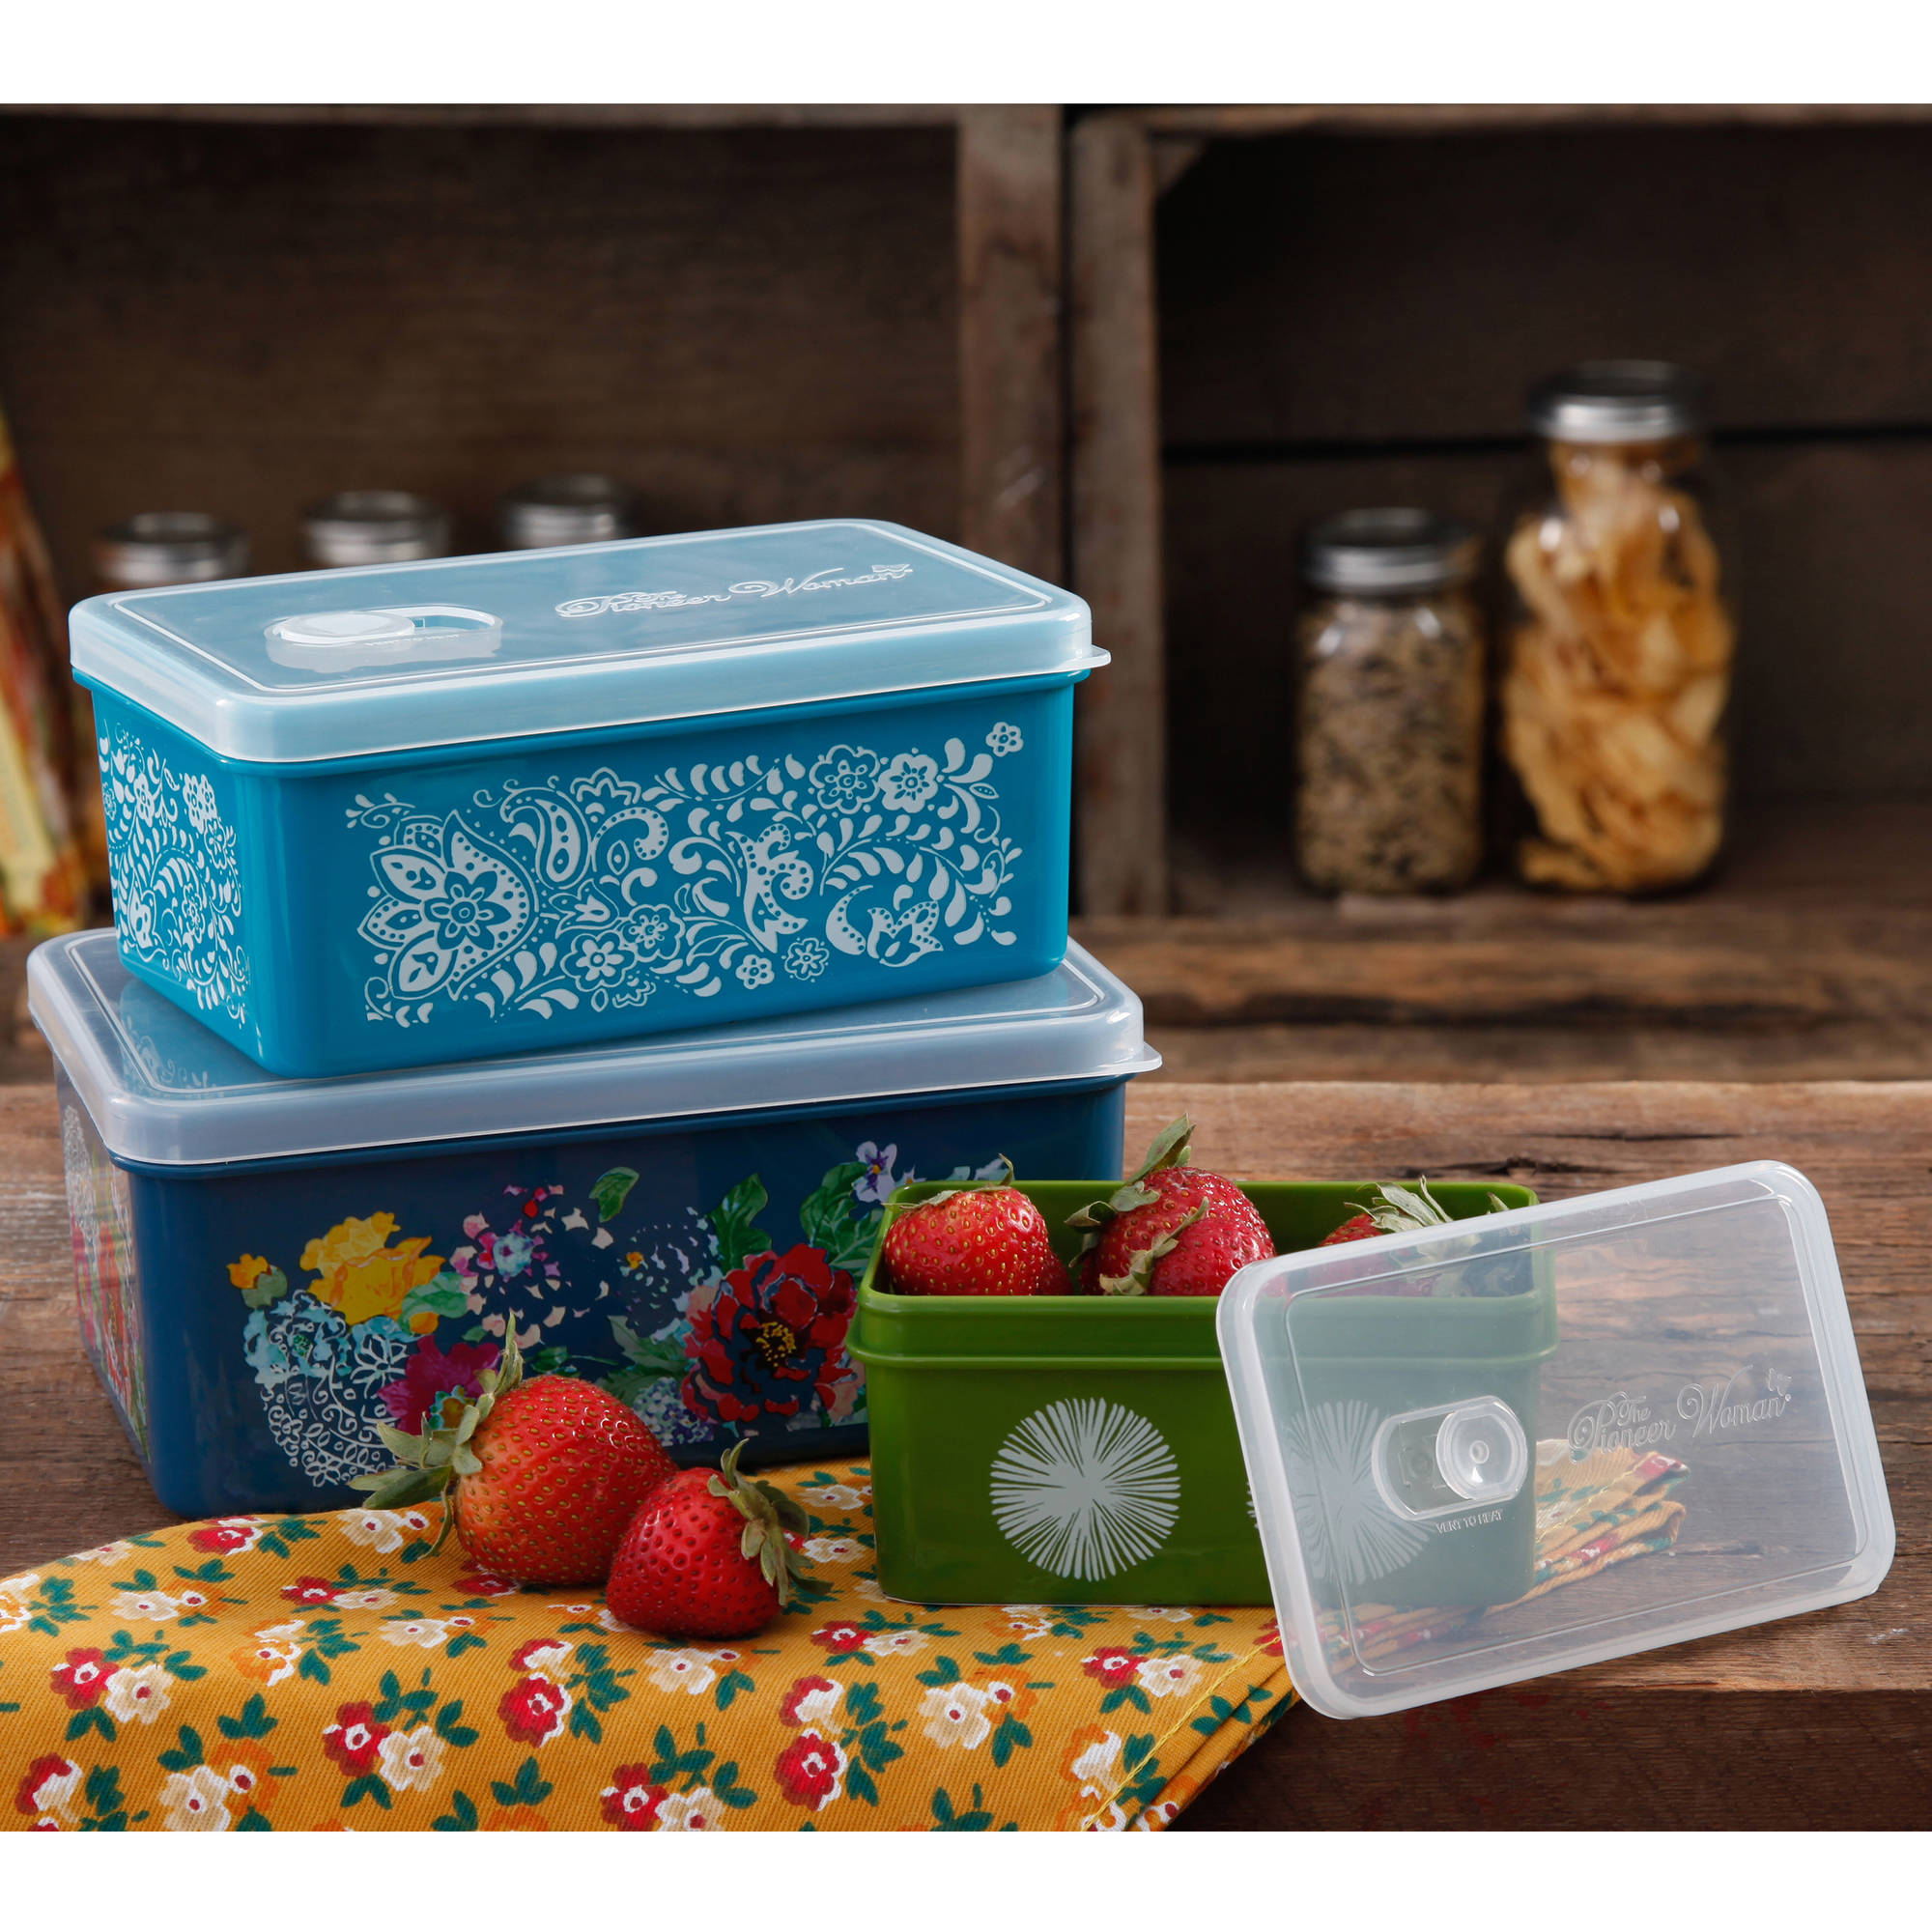 The Pioneer Woman Rectangular Food Storage with Vent Container Set